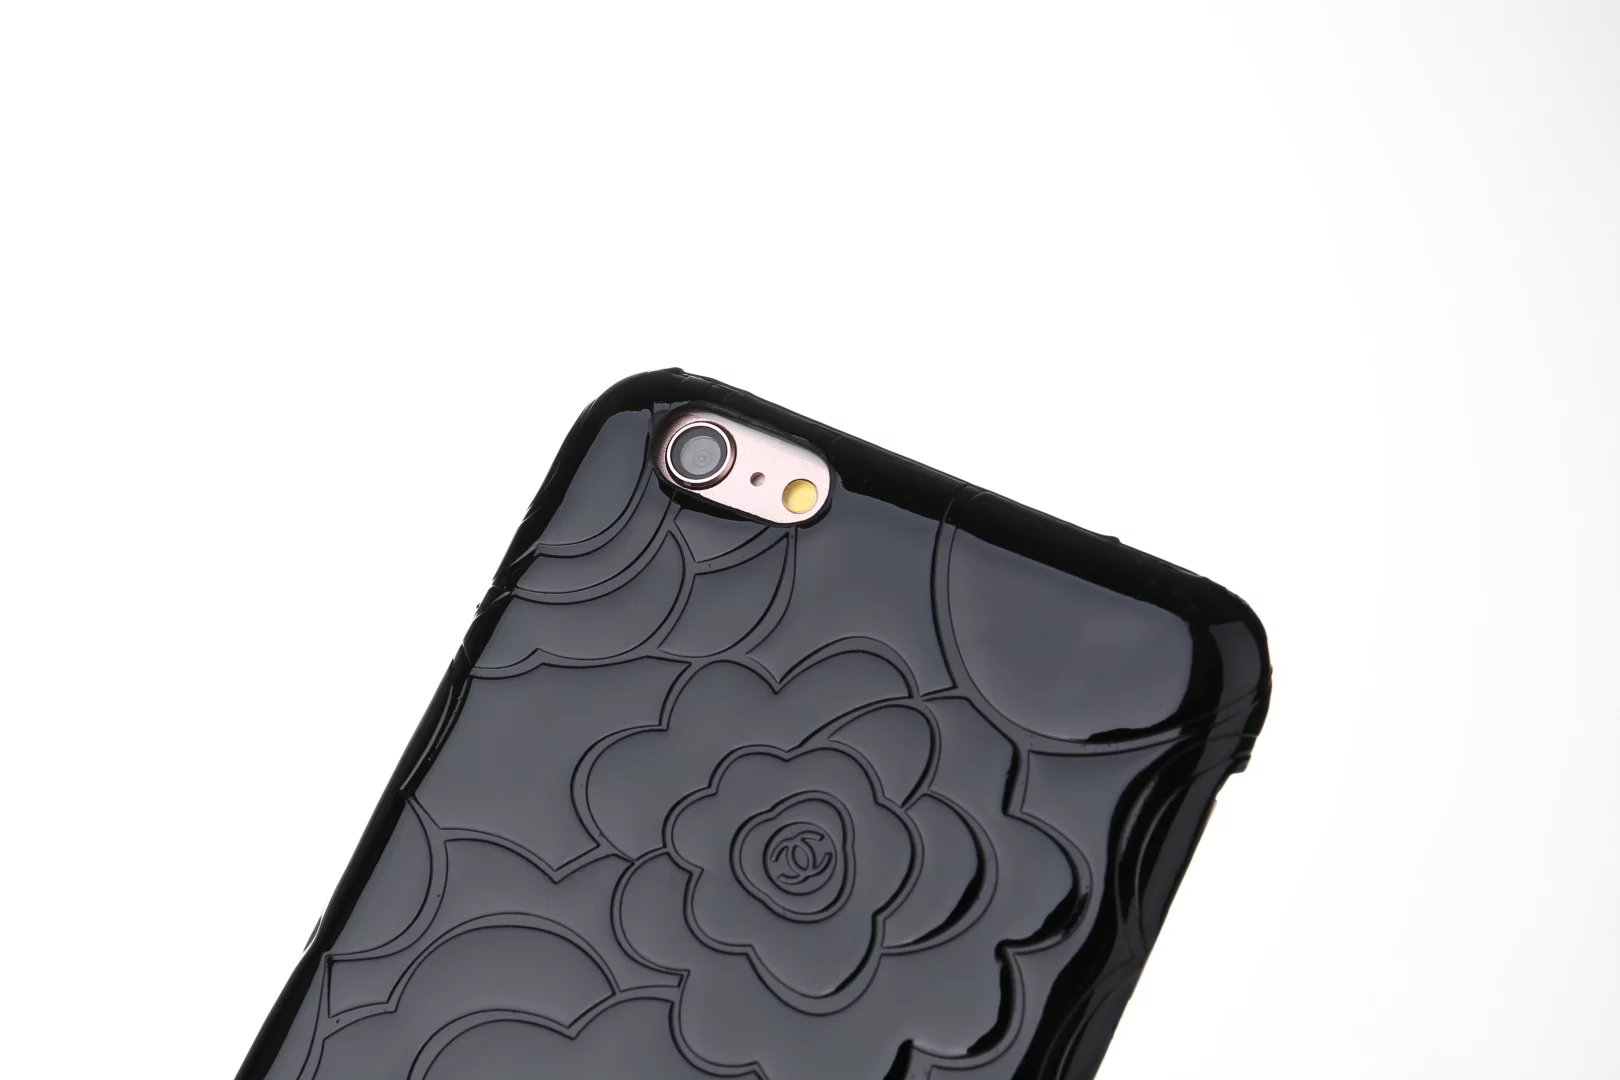 iphone 8 case custom top selling iphone 8 cases Chanel iphone 8 case where can i buy cell phone cases iphone 8 leather case designer latest iphone 8 cases iphone 8 fashion cases 8 covers mobile phone case shop